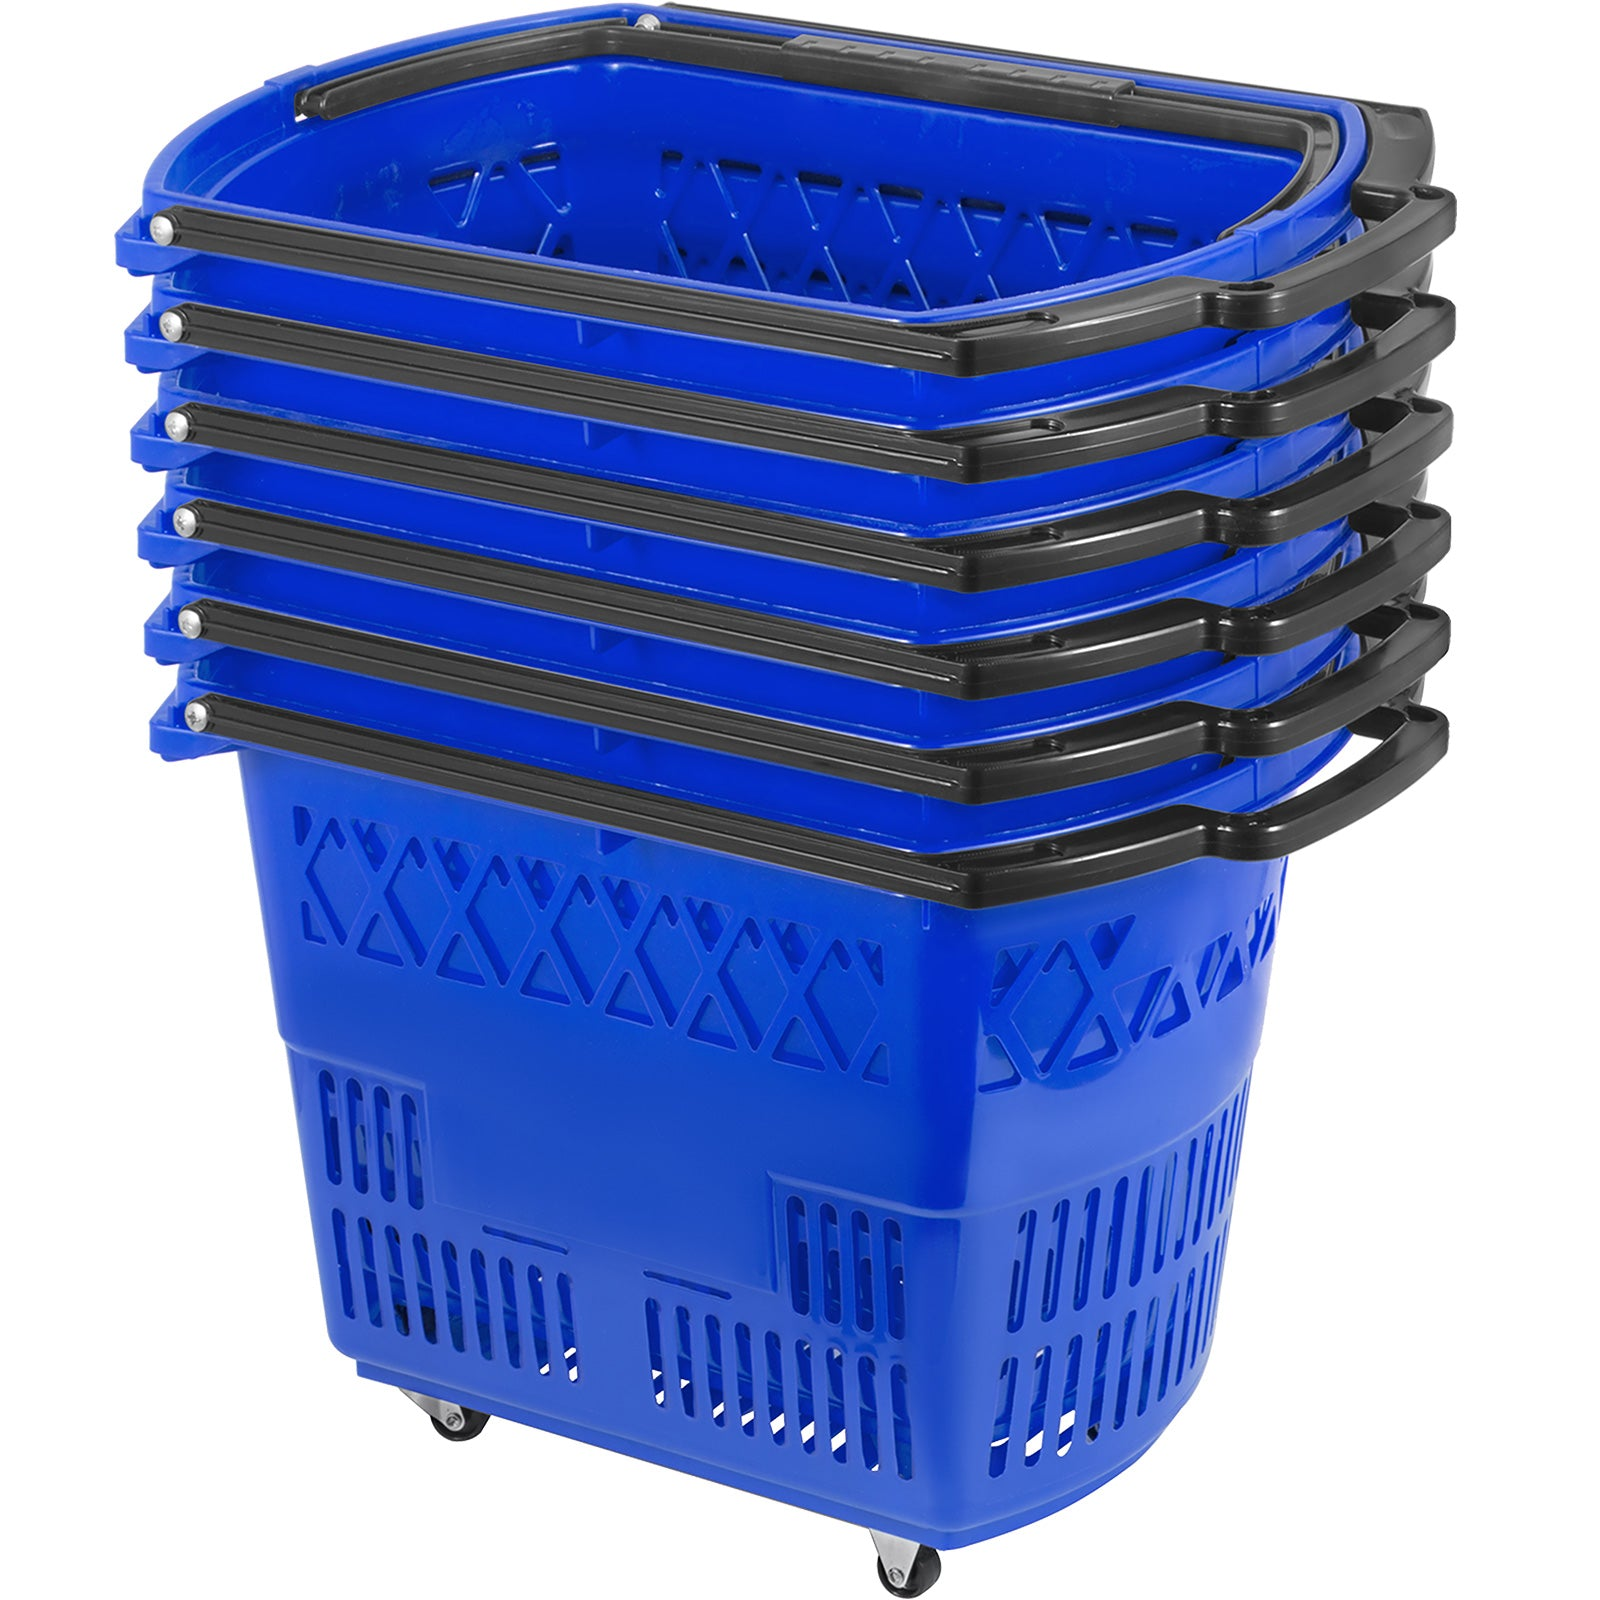 6pcs Blue Shopping Basket 75lbs 21x13.2x14.3in Lightweight Durable Supermarket